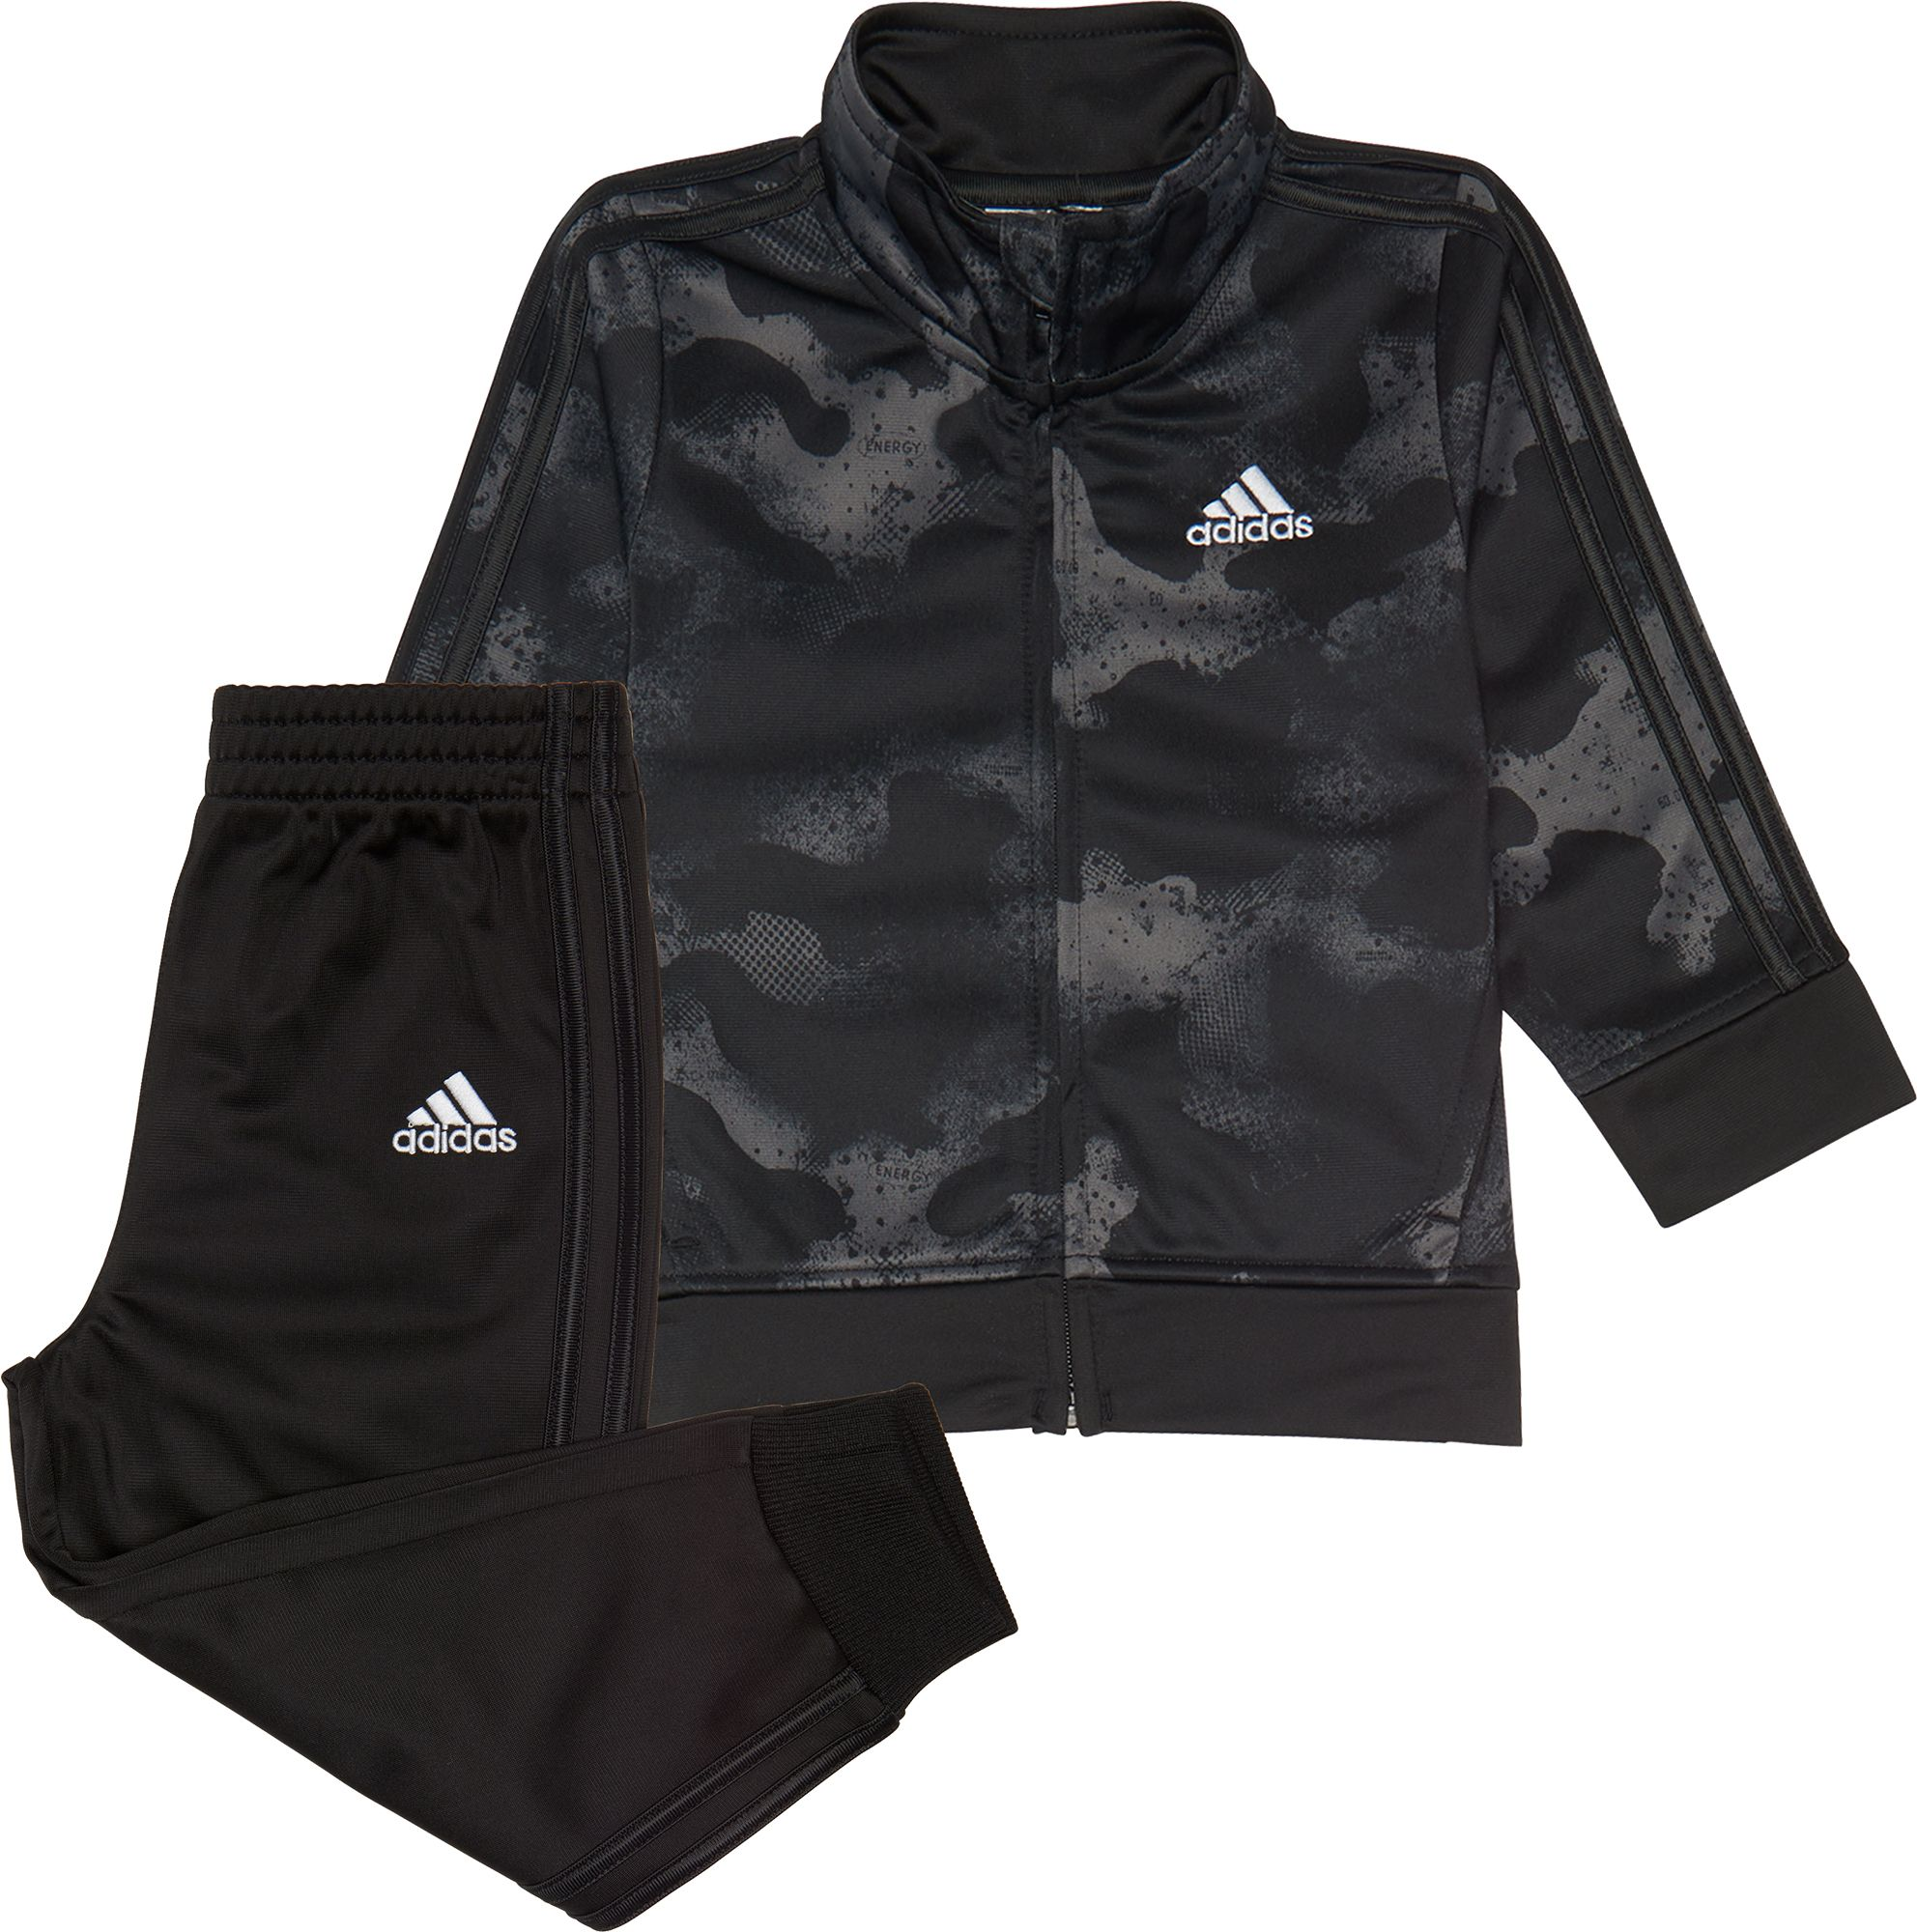 adidas Little Boys' Printed Zip Front Tricot Jacket and Jogger Pants Set, Boy's, Size: 2T, Black thumbnail